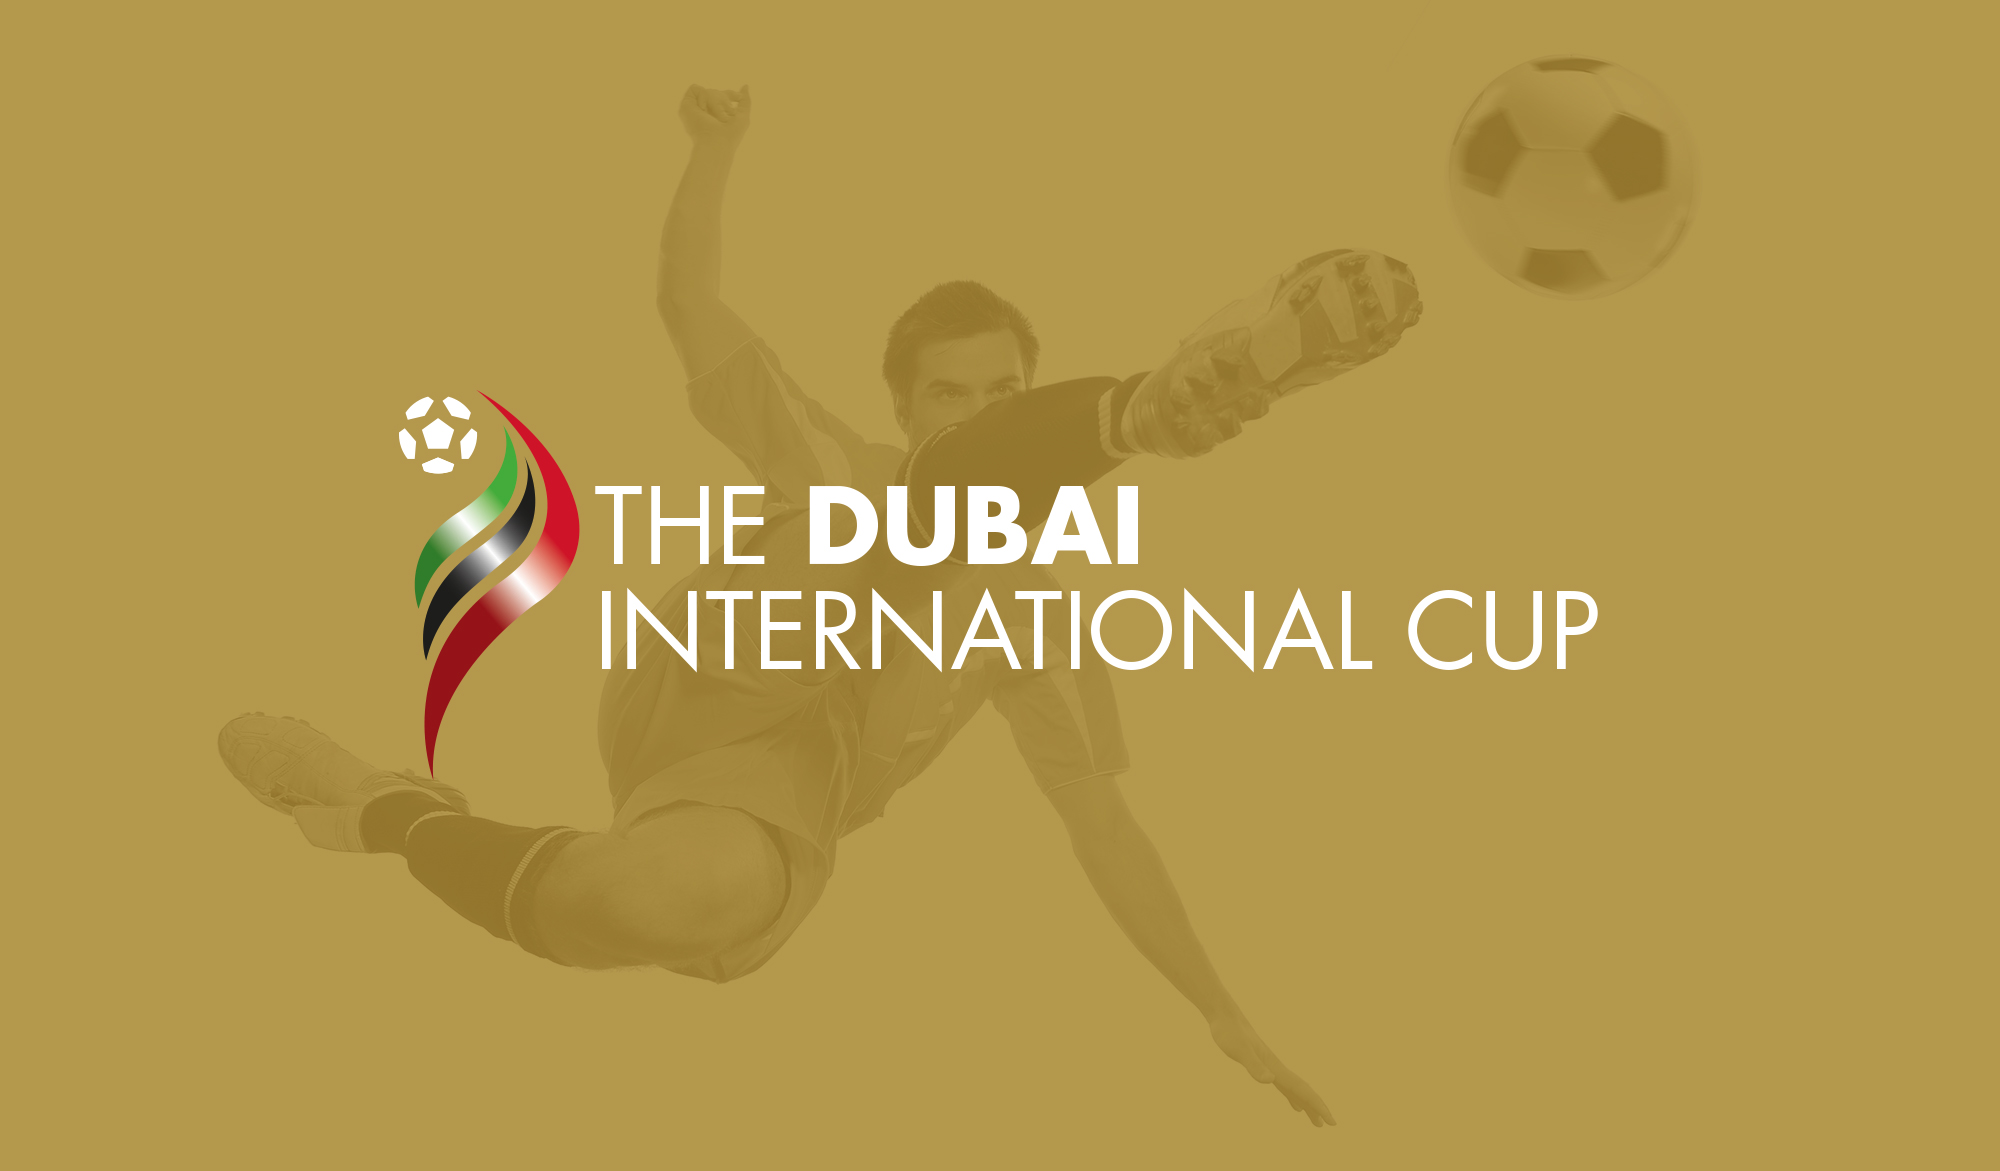 The Dubai International Cup logo